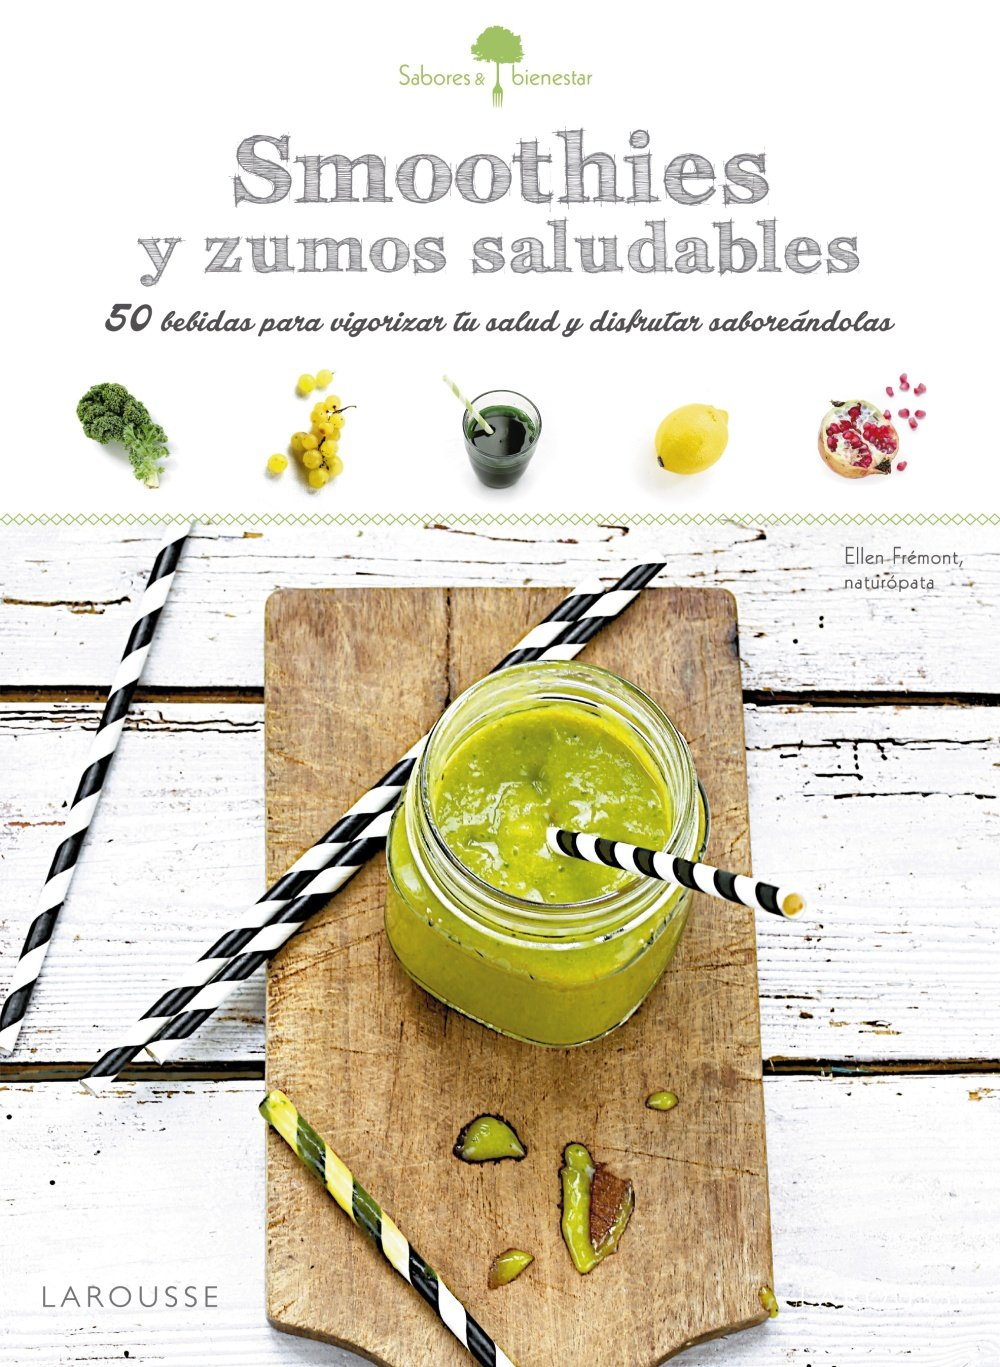 Sabores & Bienestar: Smoothies saludables (Spanish Edition): Gustave Flaubert, Imma Estany Morros: 9788416368969: Amazon.com: Books